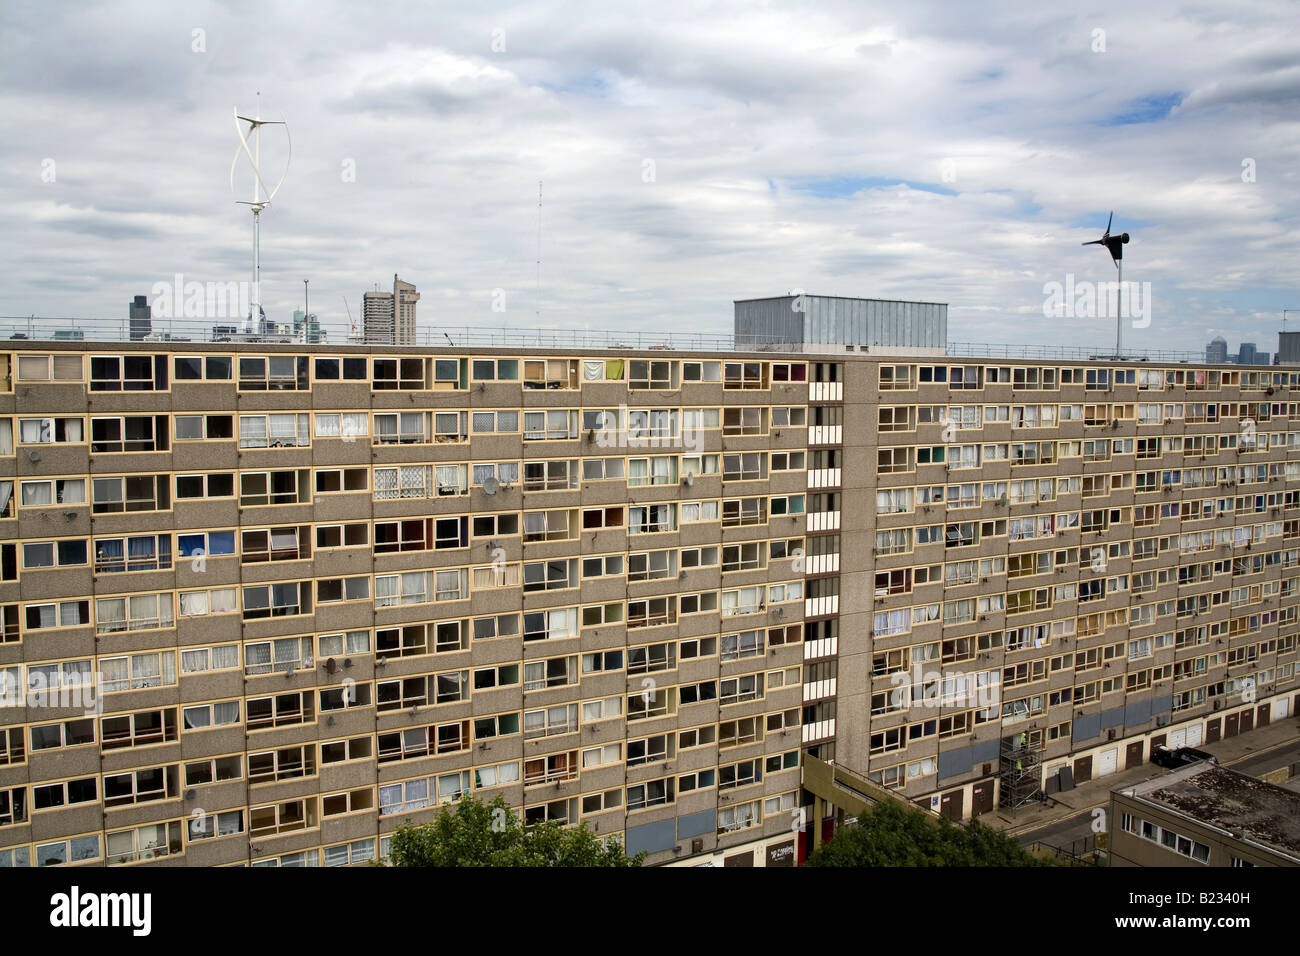 Vertical Axis Wind Turbines on top of a Council Estate in South London England Britain UK Stock Photo